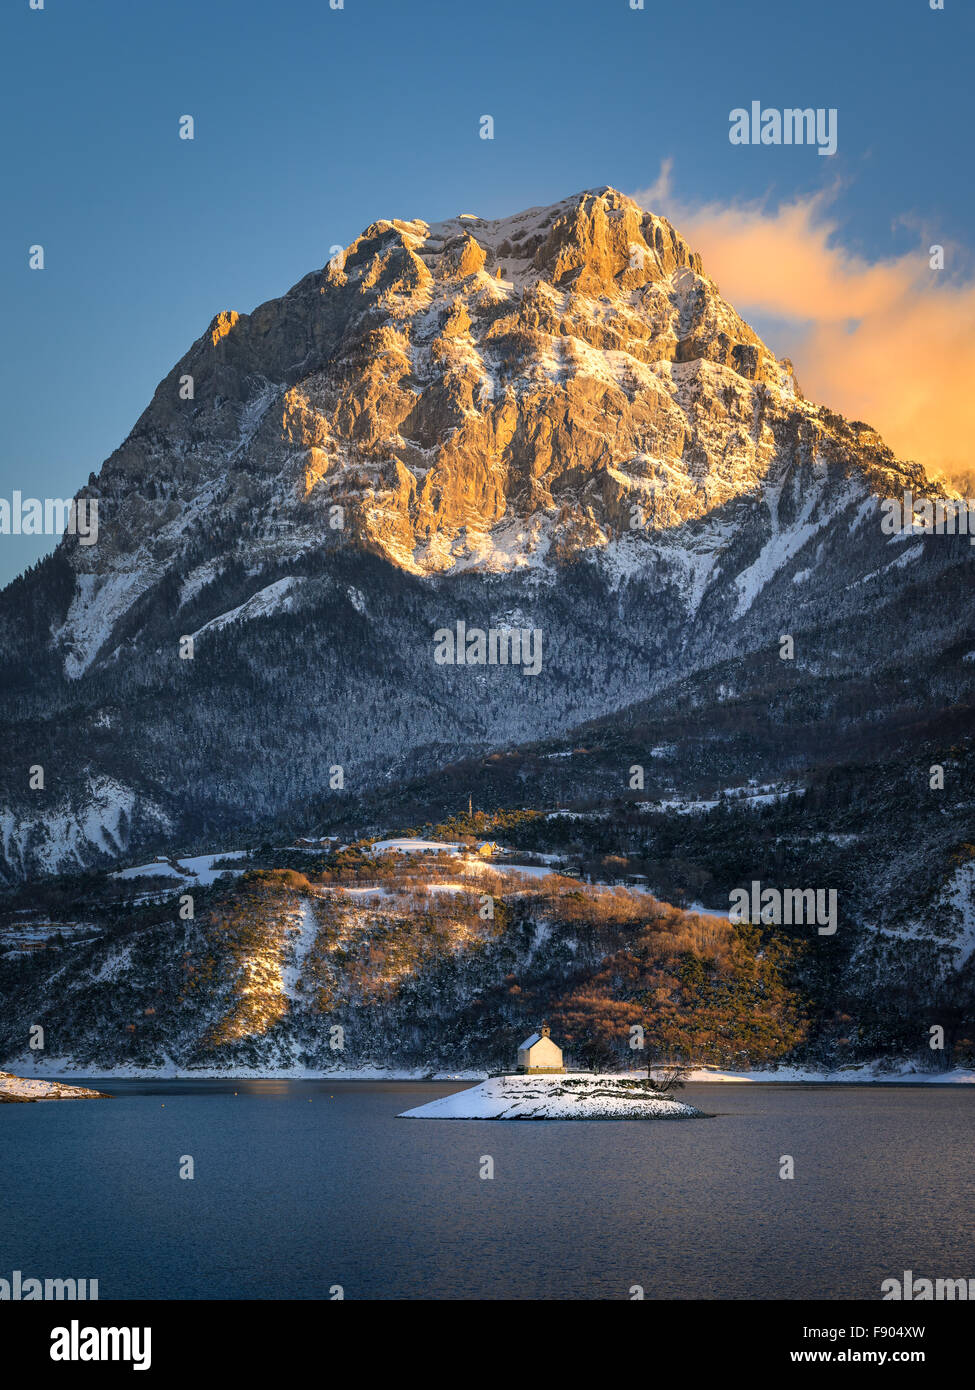 Winter sunset view of the Grand Morgon mountain rising above the Saint Michel Bay of Serre Poncon lake, Southern - Stock Image